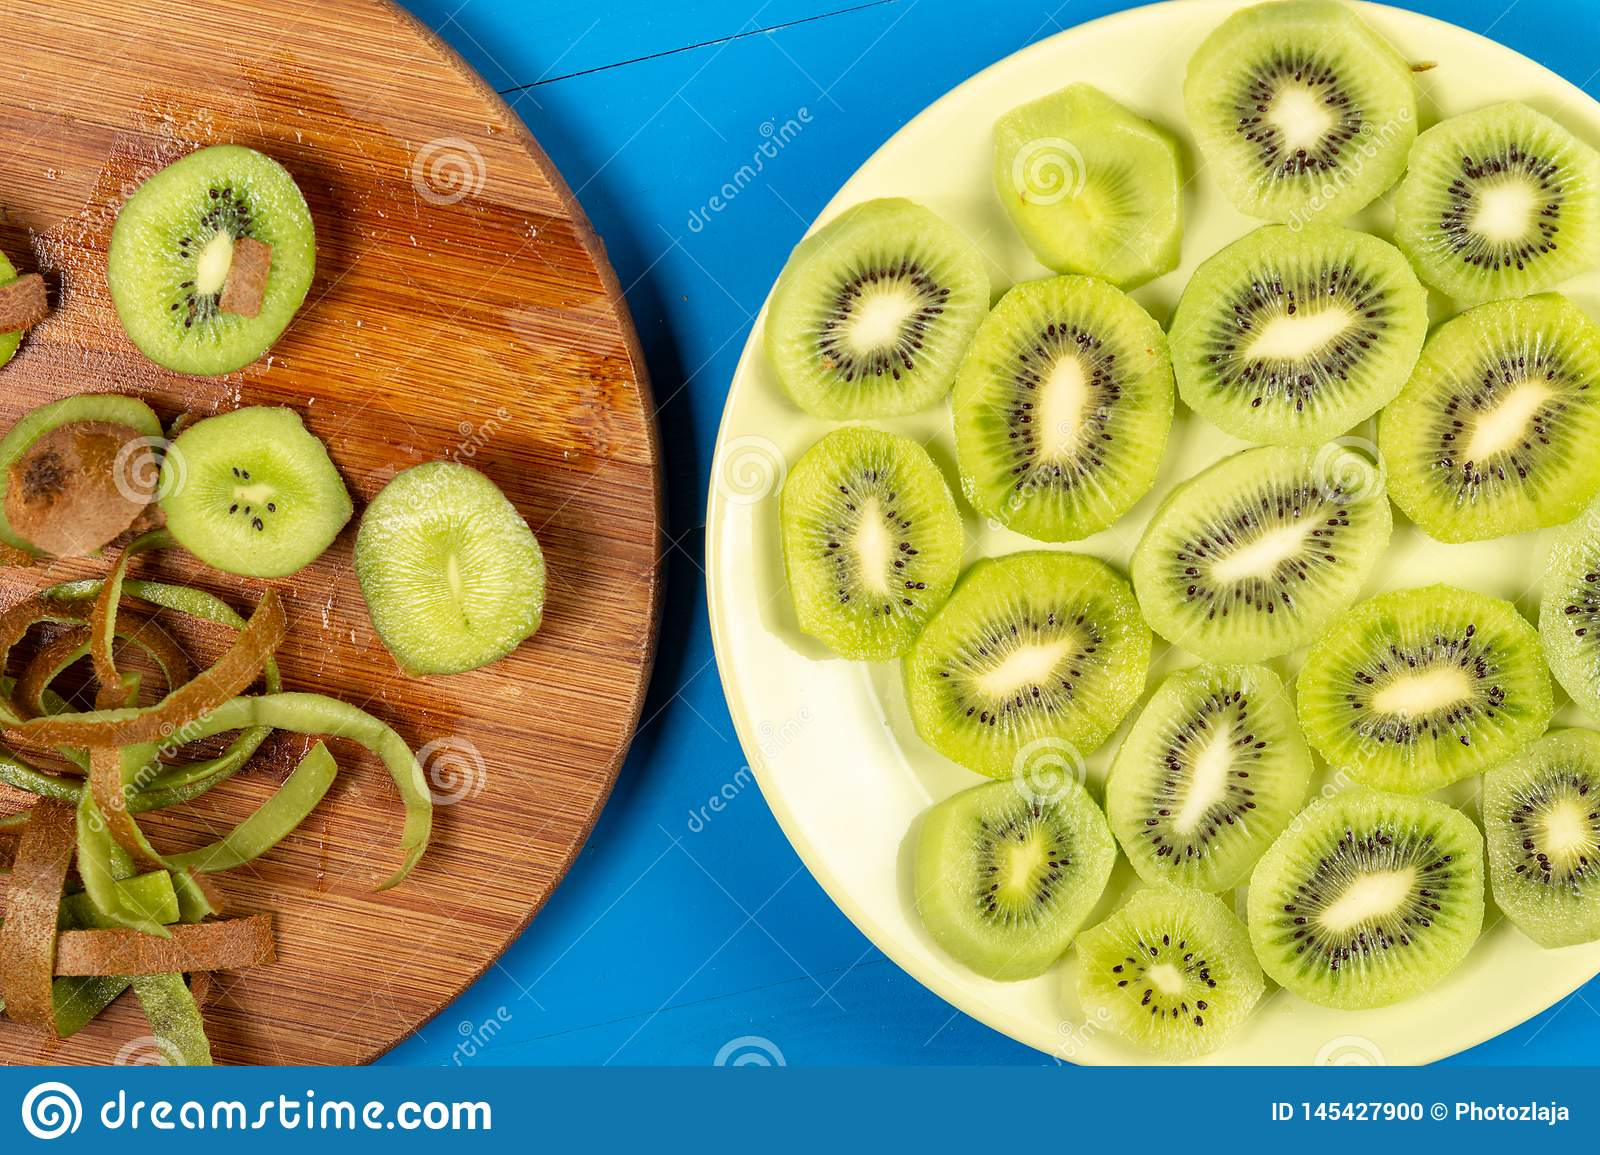 Sliced Kiwi Fruit On The Plate and Wooden Cutting Board